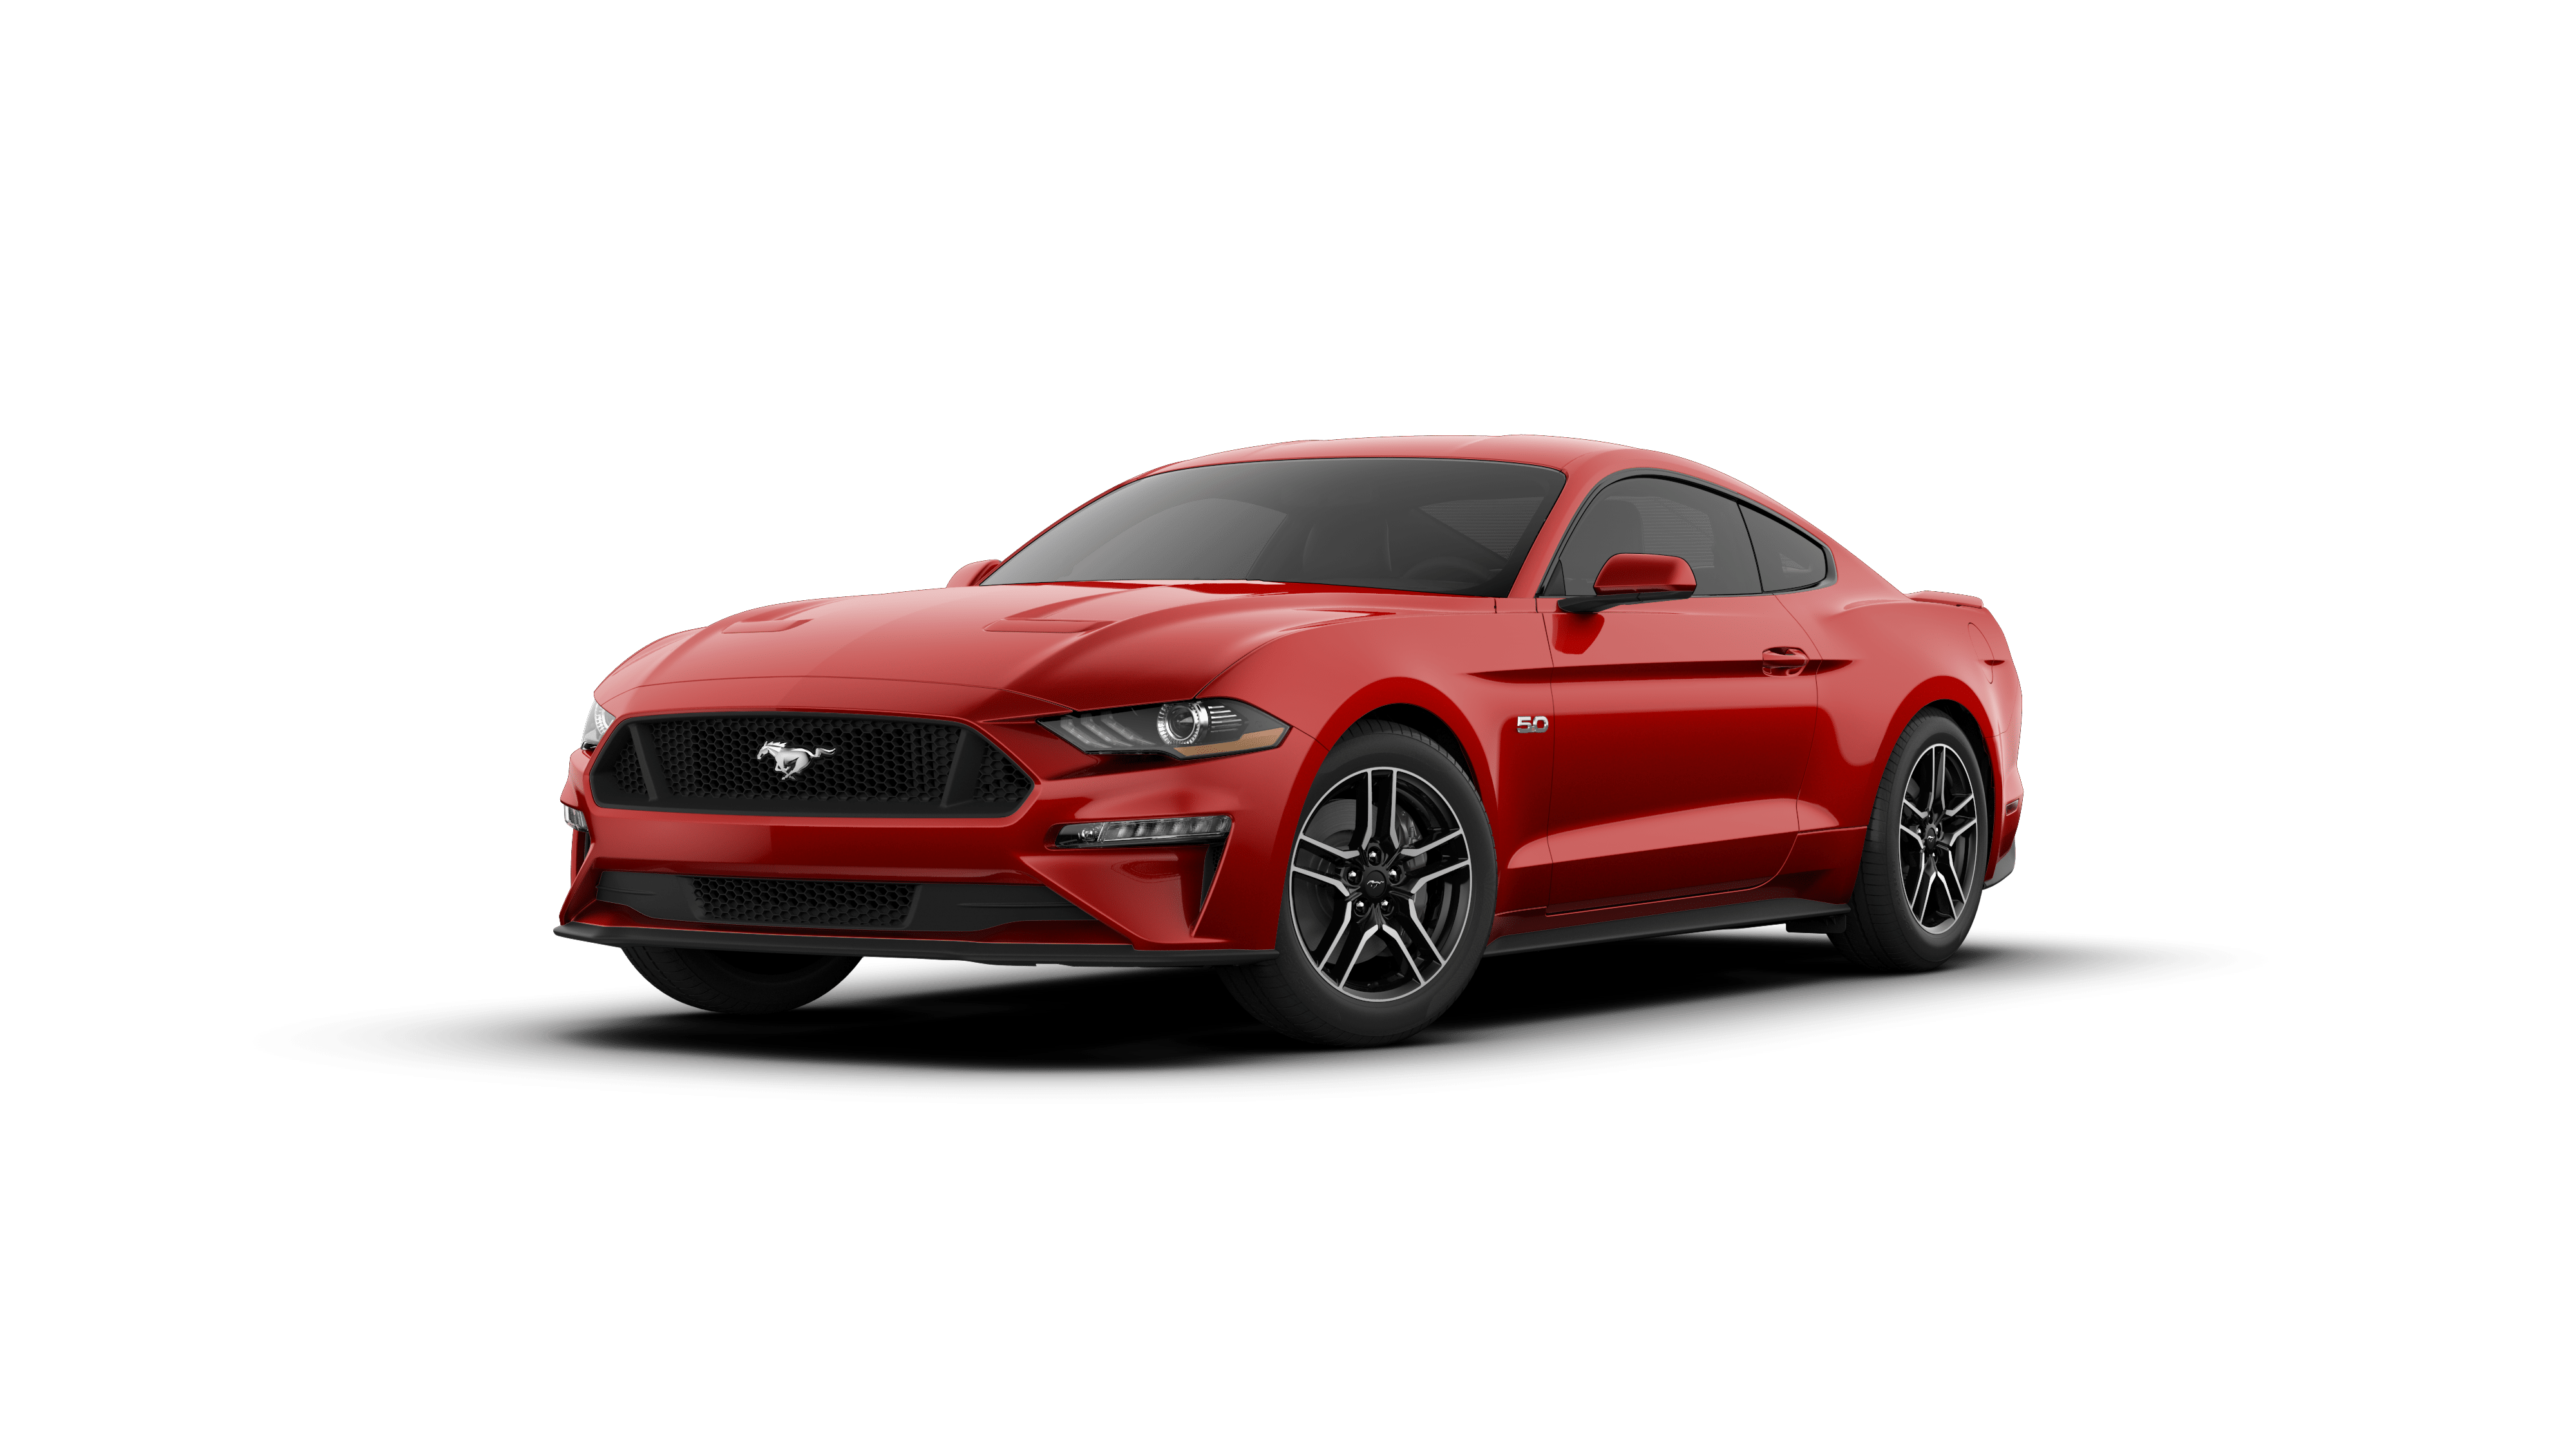 2018 Ford Mustang Vehicle Photo in Souderton, PA 18964-1038